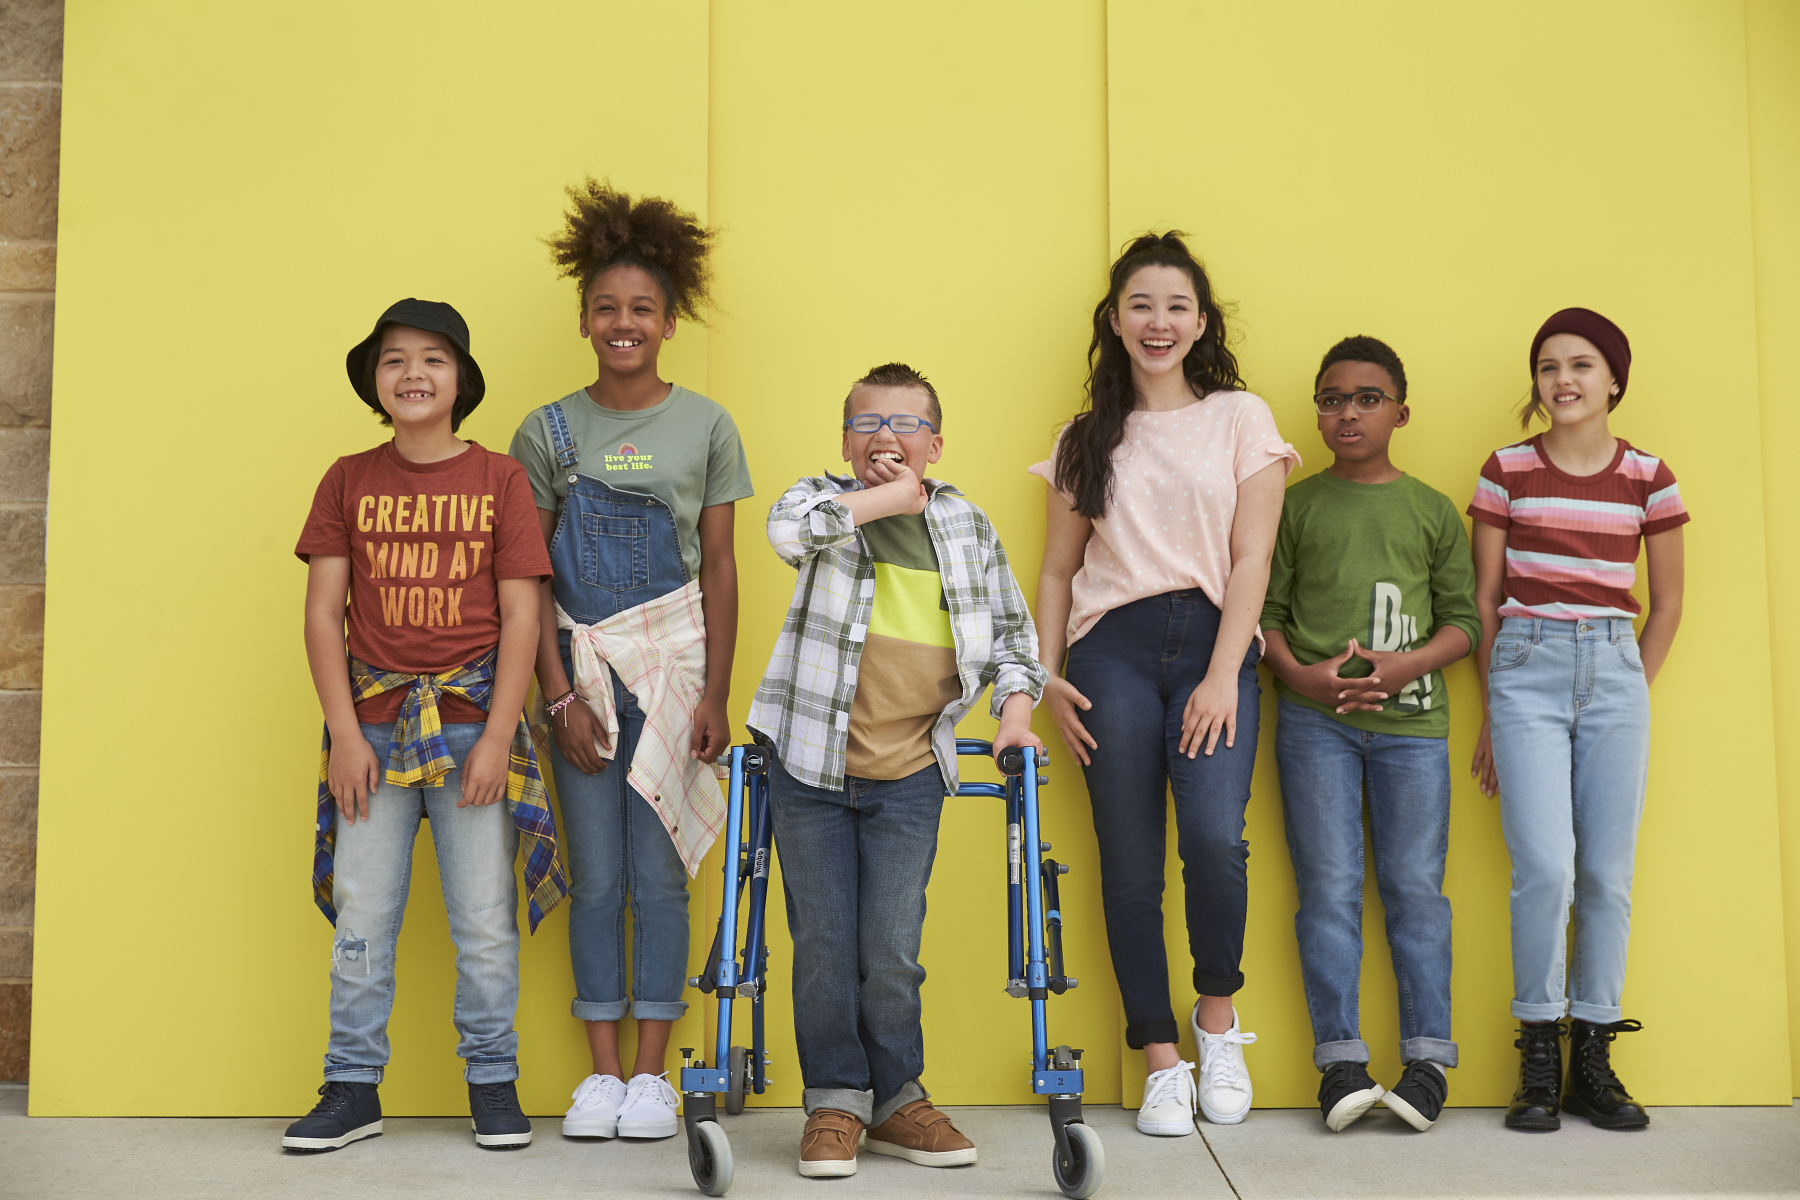 JCPenney to introduced Thereabouts, an apparel line featuring adaptive clothing options for disabled and neurodiverse children.